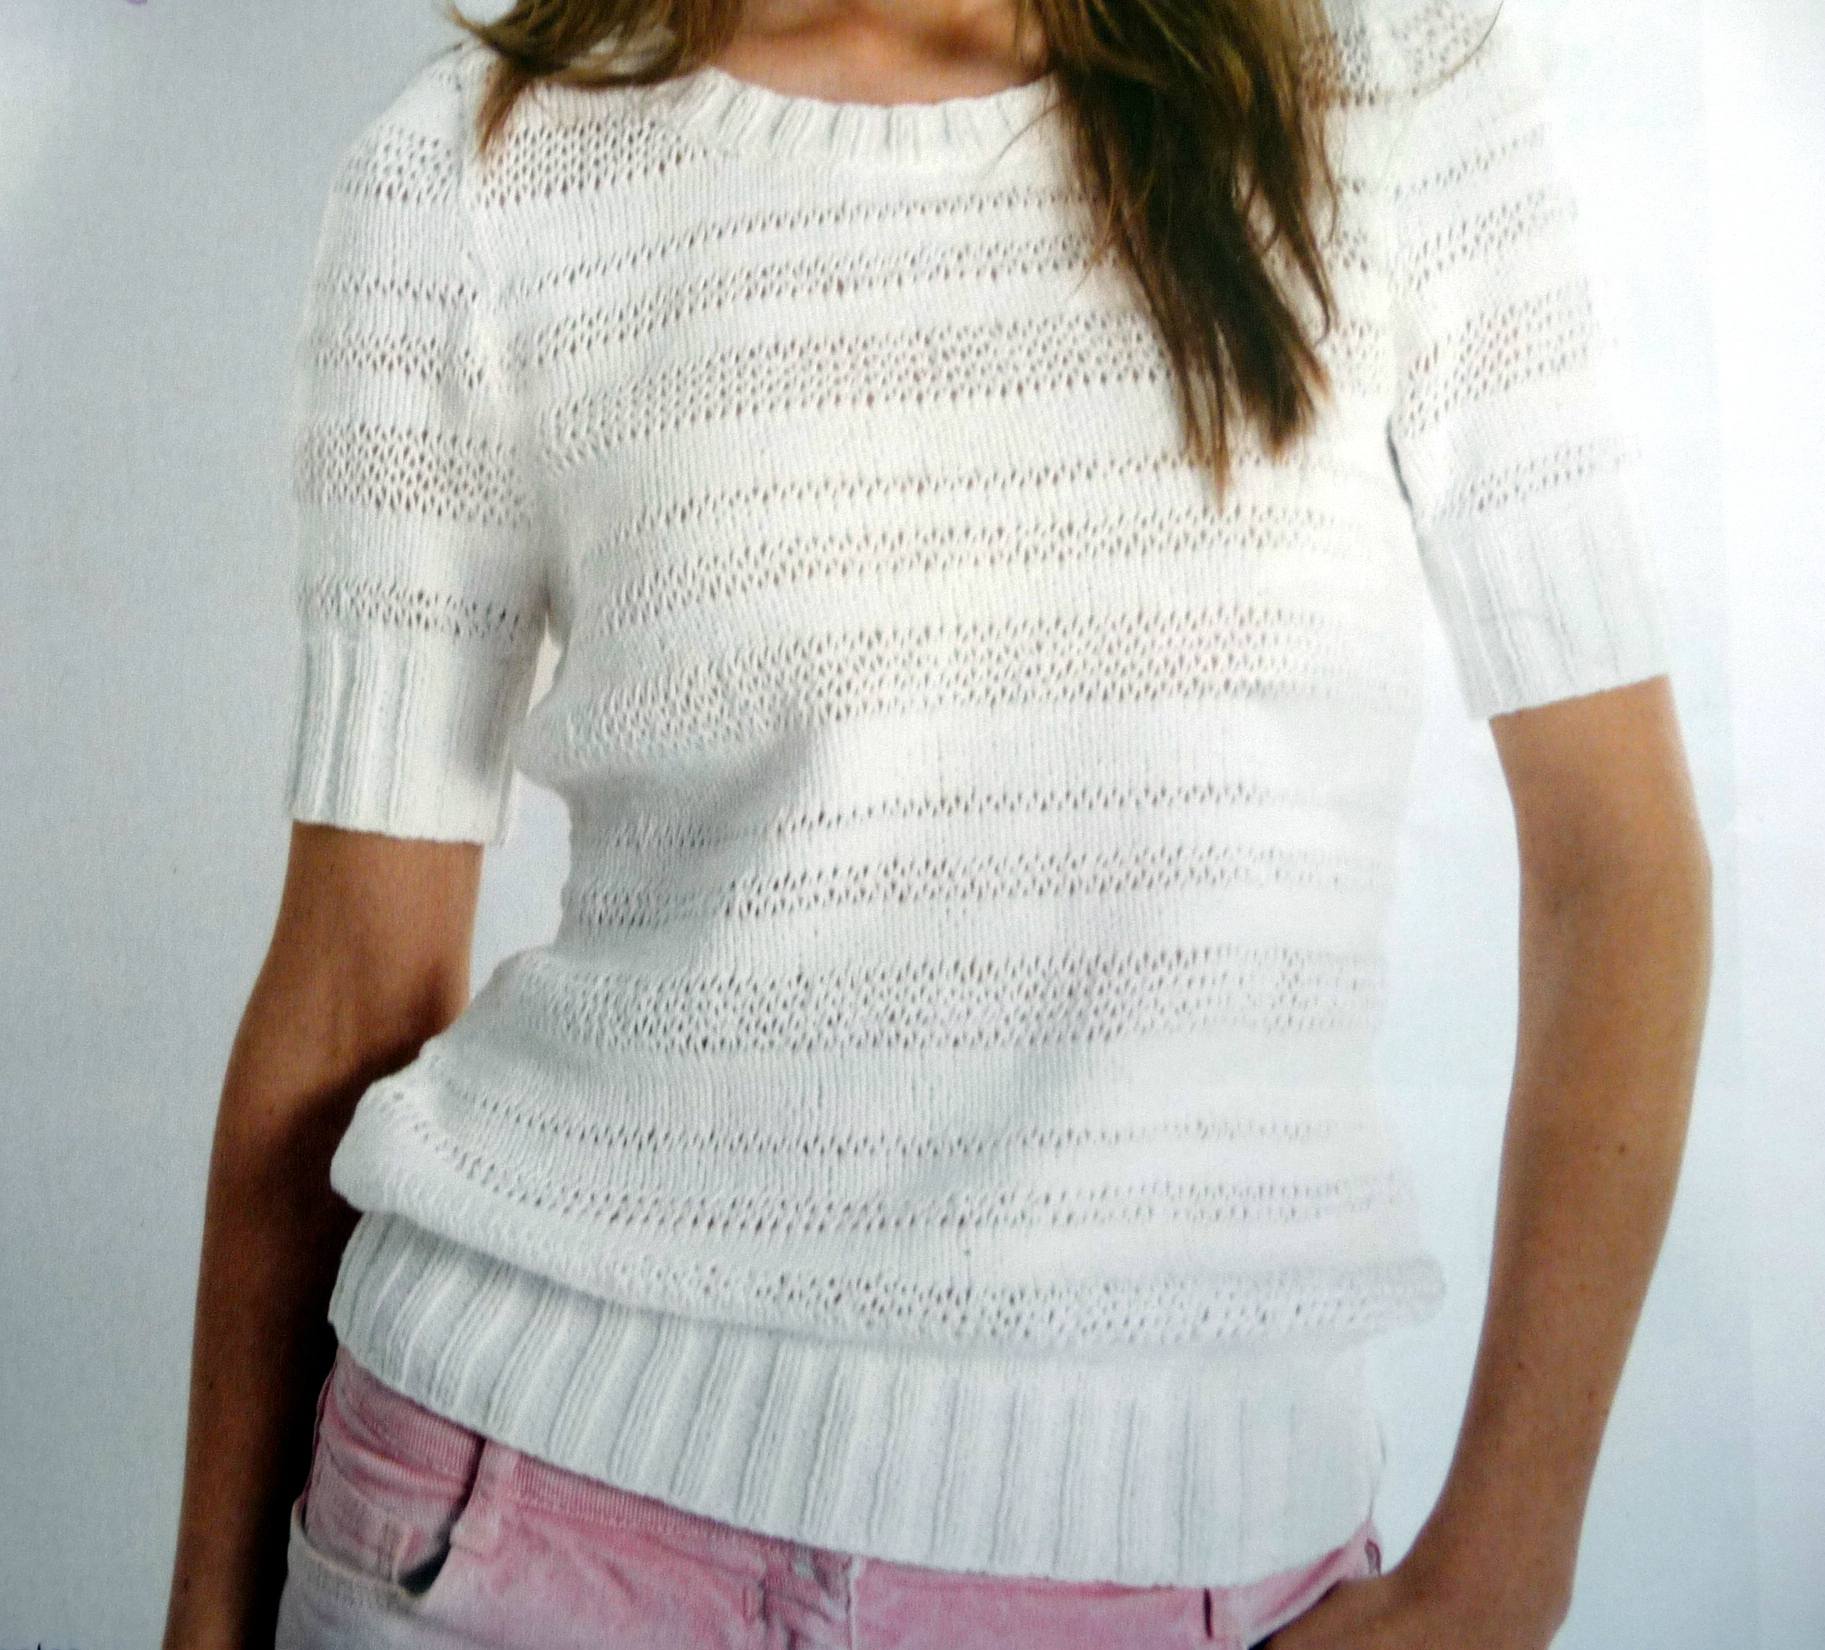 Tricot pull aiguille 7